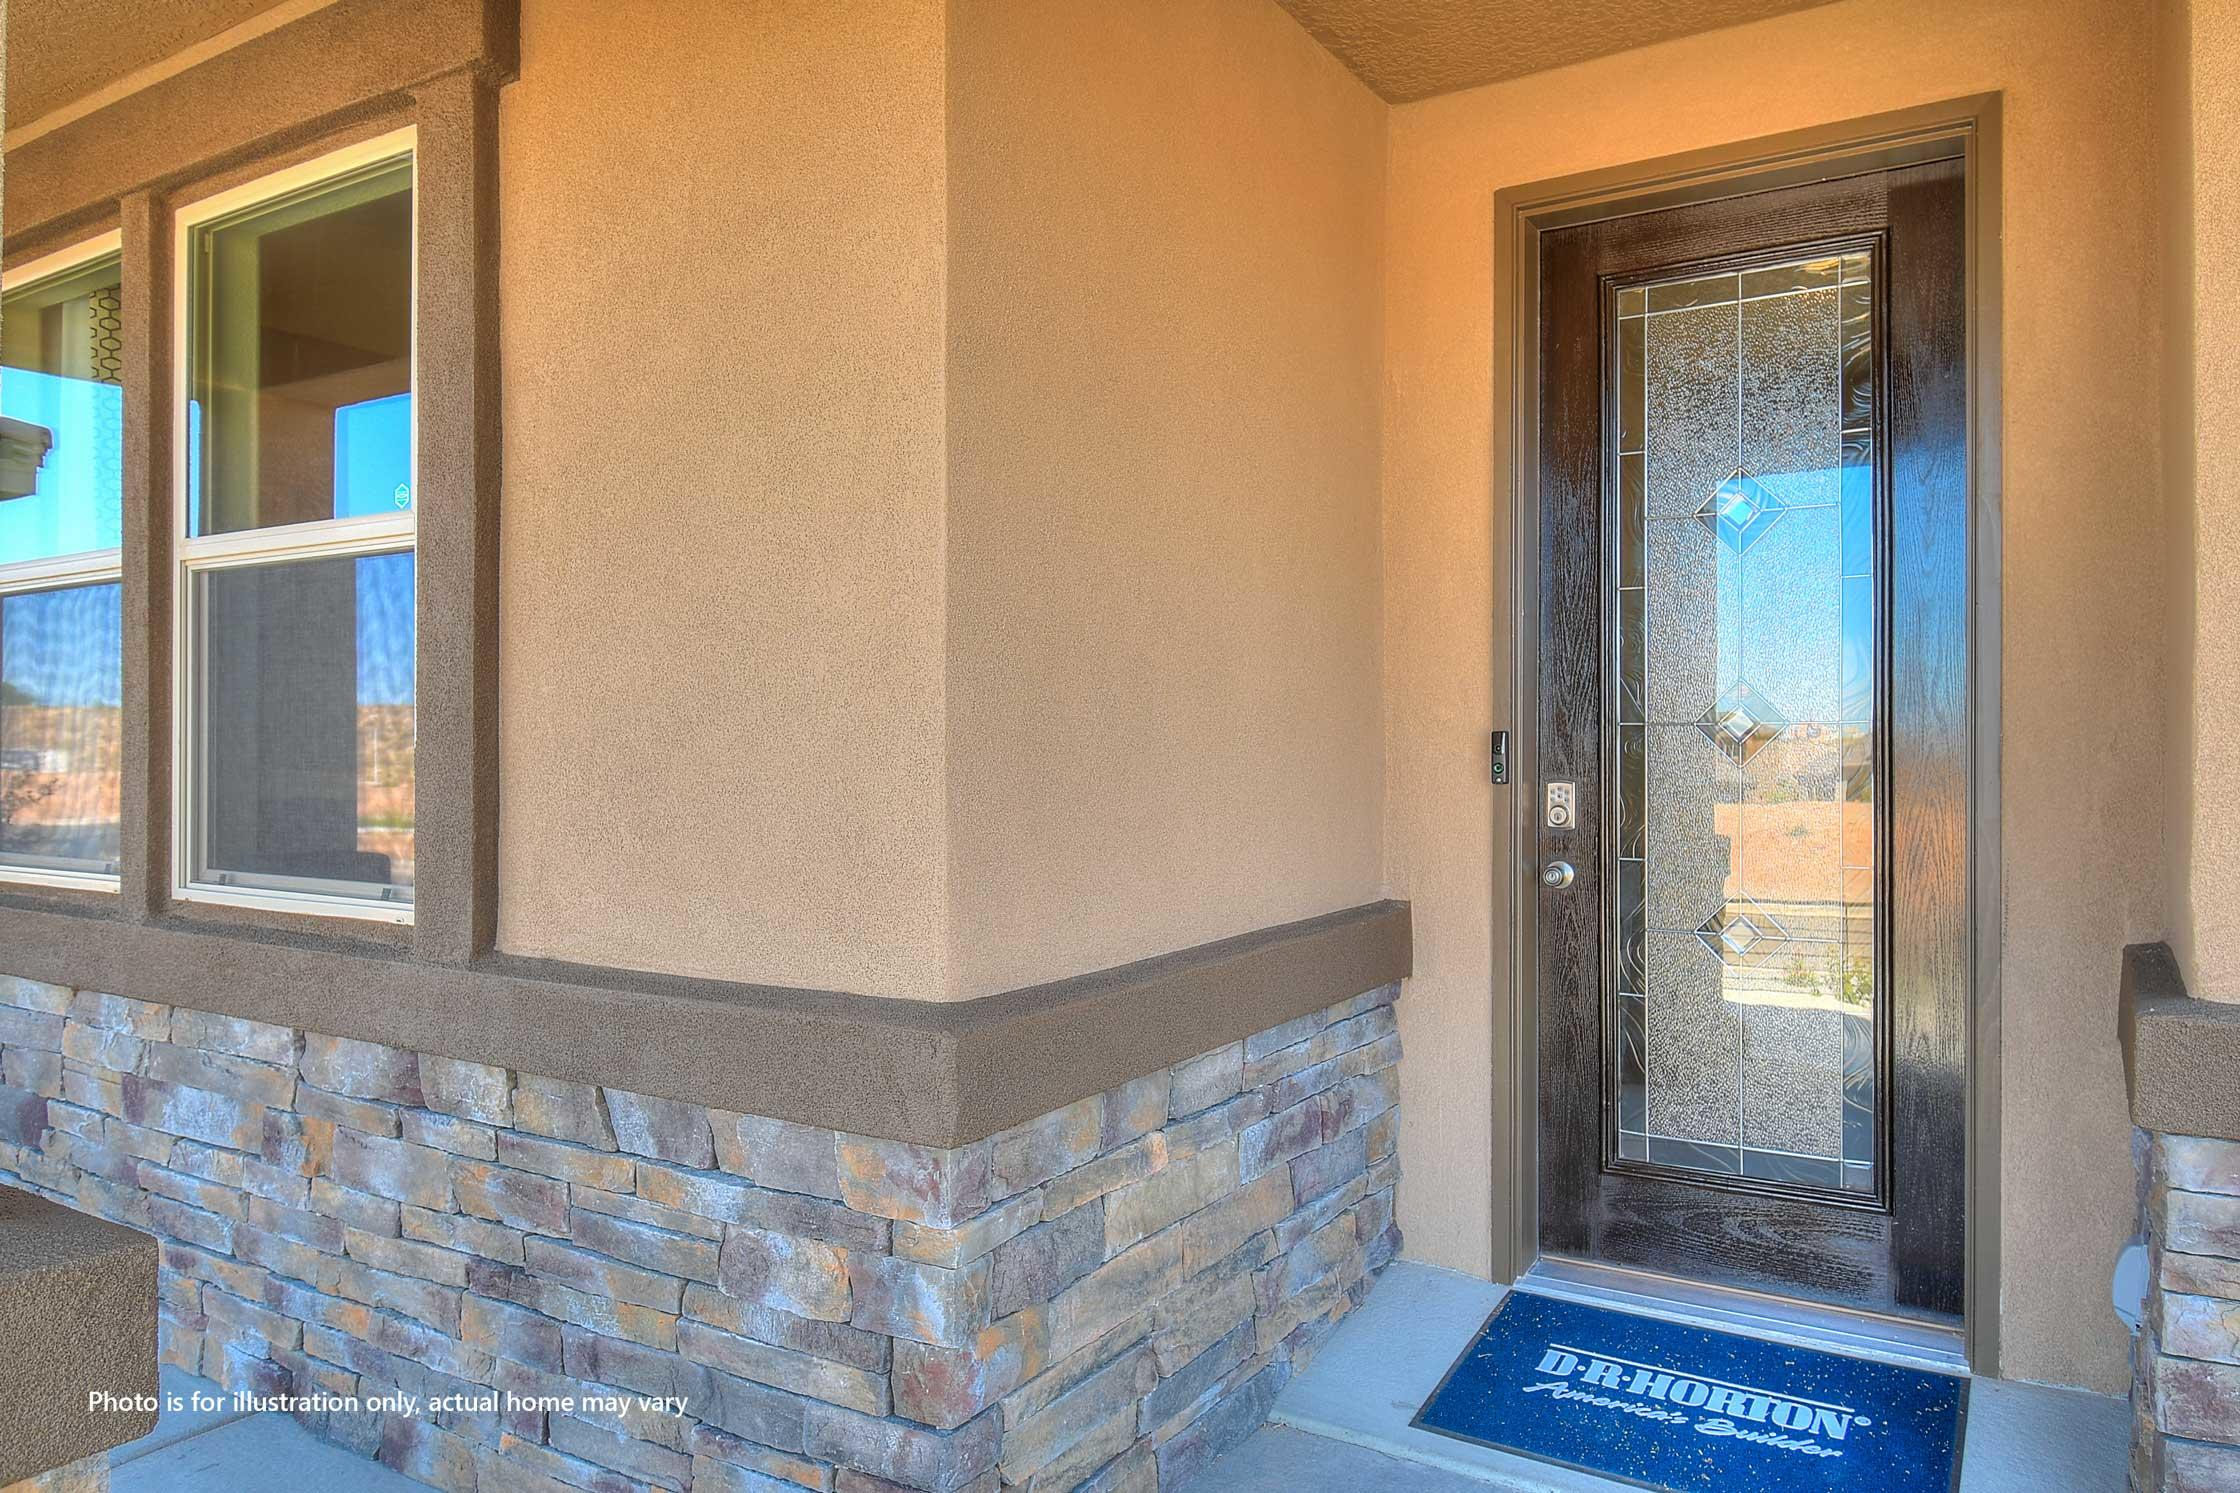 LIMITED TIME PROMO: Receive UPTO $7,000 Flex Cash PLUS up to $5,000 towards closing cost! BRAND NEW FLOORPLAN in the Volterra IV community in SE ABQ! This never lived-in home is CURRENTLY BEING BUILT on the LARGEST CORNER LOT of the subdivision! Our incredible 2-story ''Olivia'' model offers a spacious open kitchen / living area. Besides plenty of standard features like granite kitchen countertop and tile flooring, FIRE PLACE, the BUILT-IN CHEF'S KITCHEN and FRAMELESS HEAVY GLASS WALK IN SHOWER / GARDEN TUB COMBO will make your home your OWN! Spacious primary bedroom is on the main floor. The upstairs loft provides plenty of windows resulting in a bright secondary living space. A gas stub at the outdoor covered patio will ensure a stress-free family bbq...